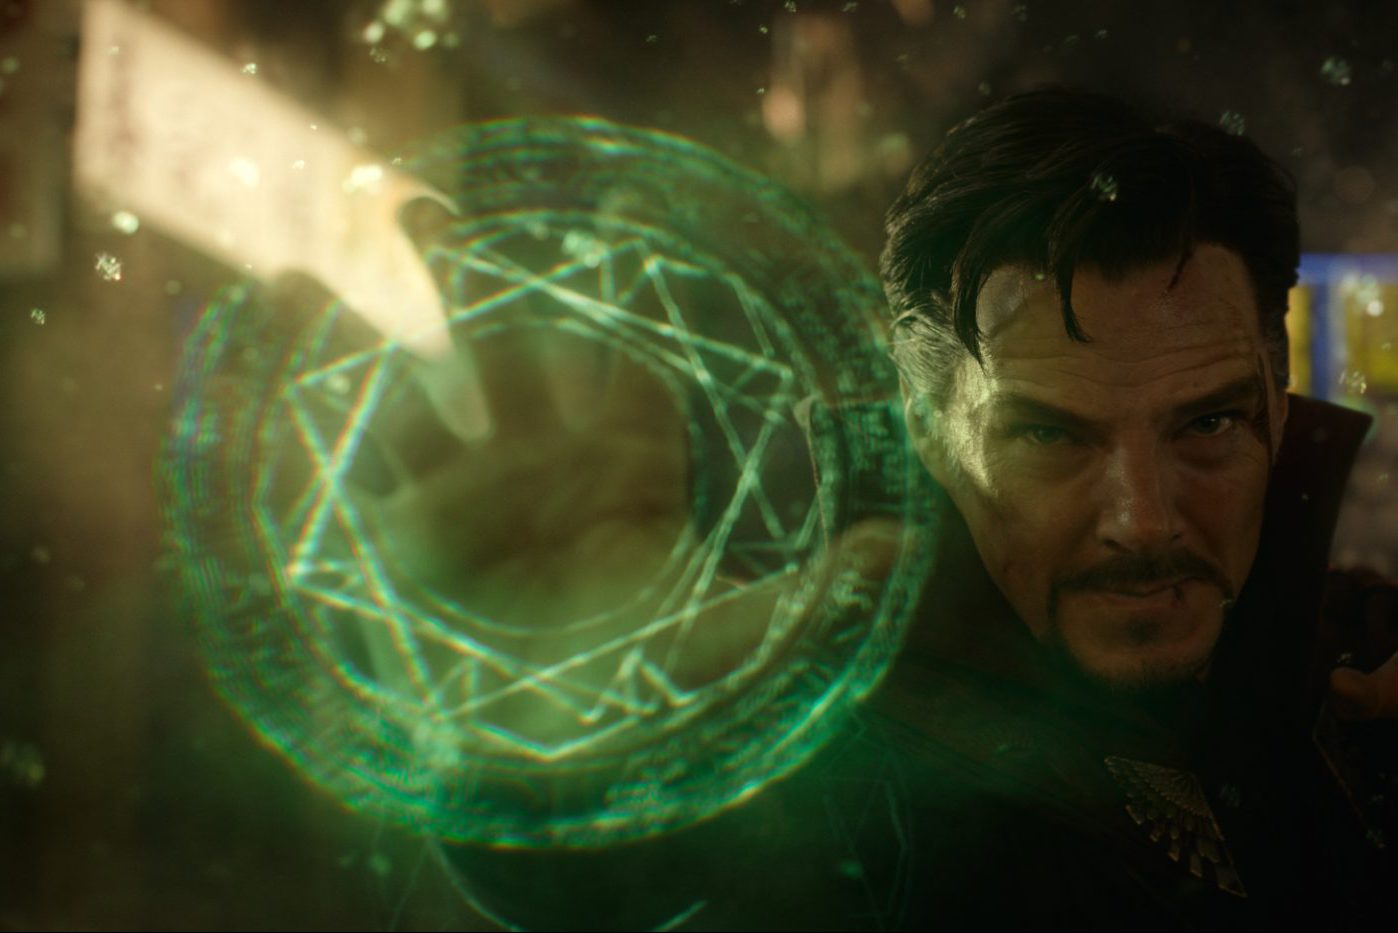 Connaît-on le méchant du film Doctor Strange 2 ?